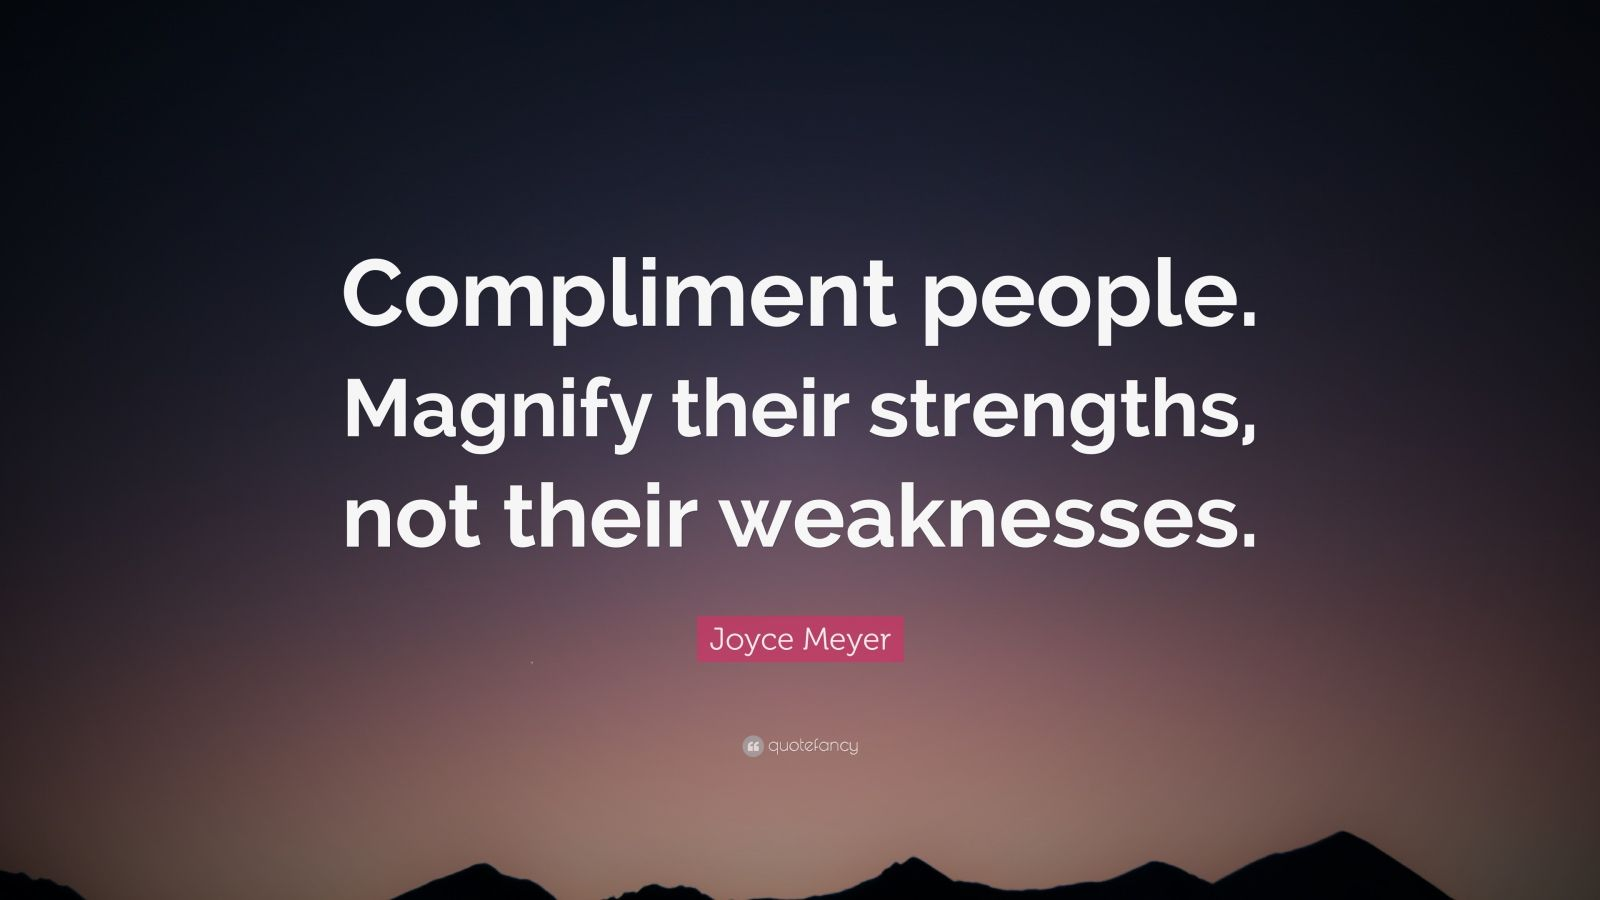 Joyce Meyer Quote Compliment People Magnify Their Strengths Not